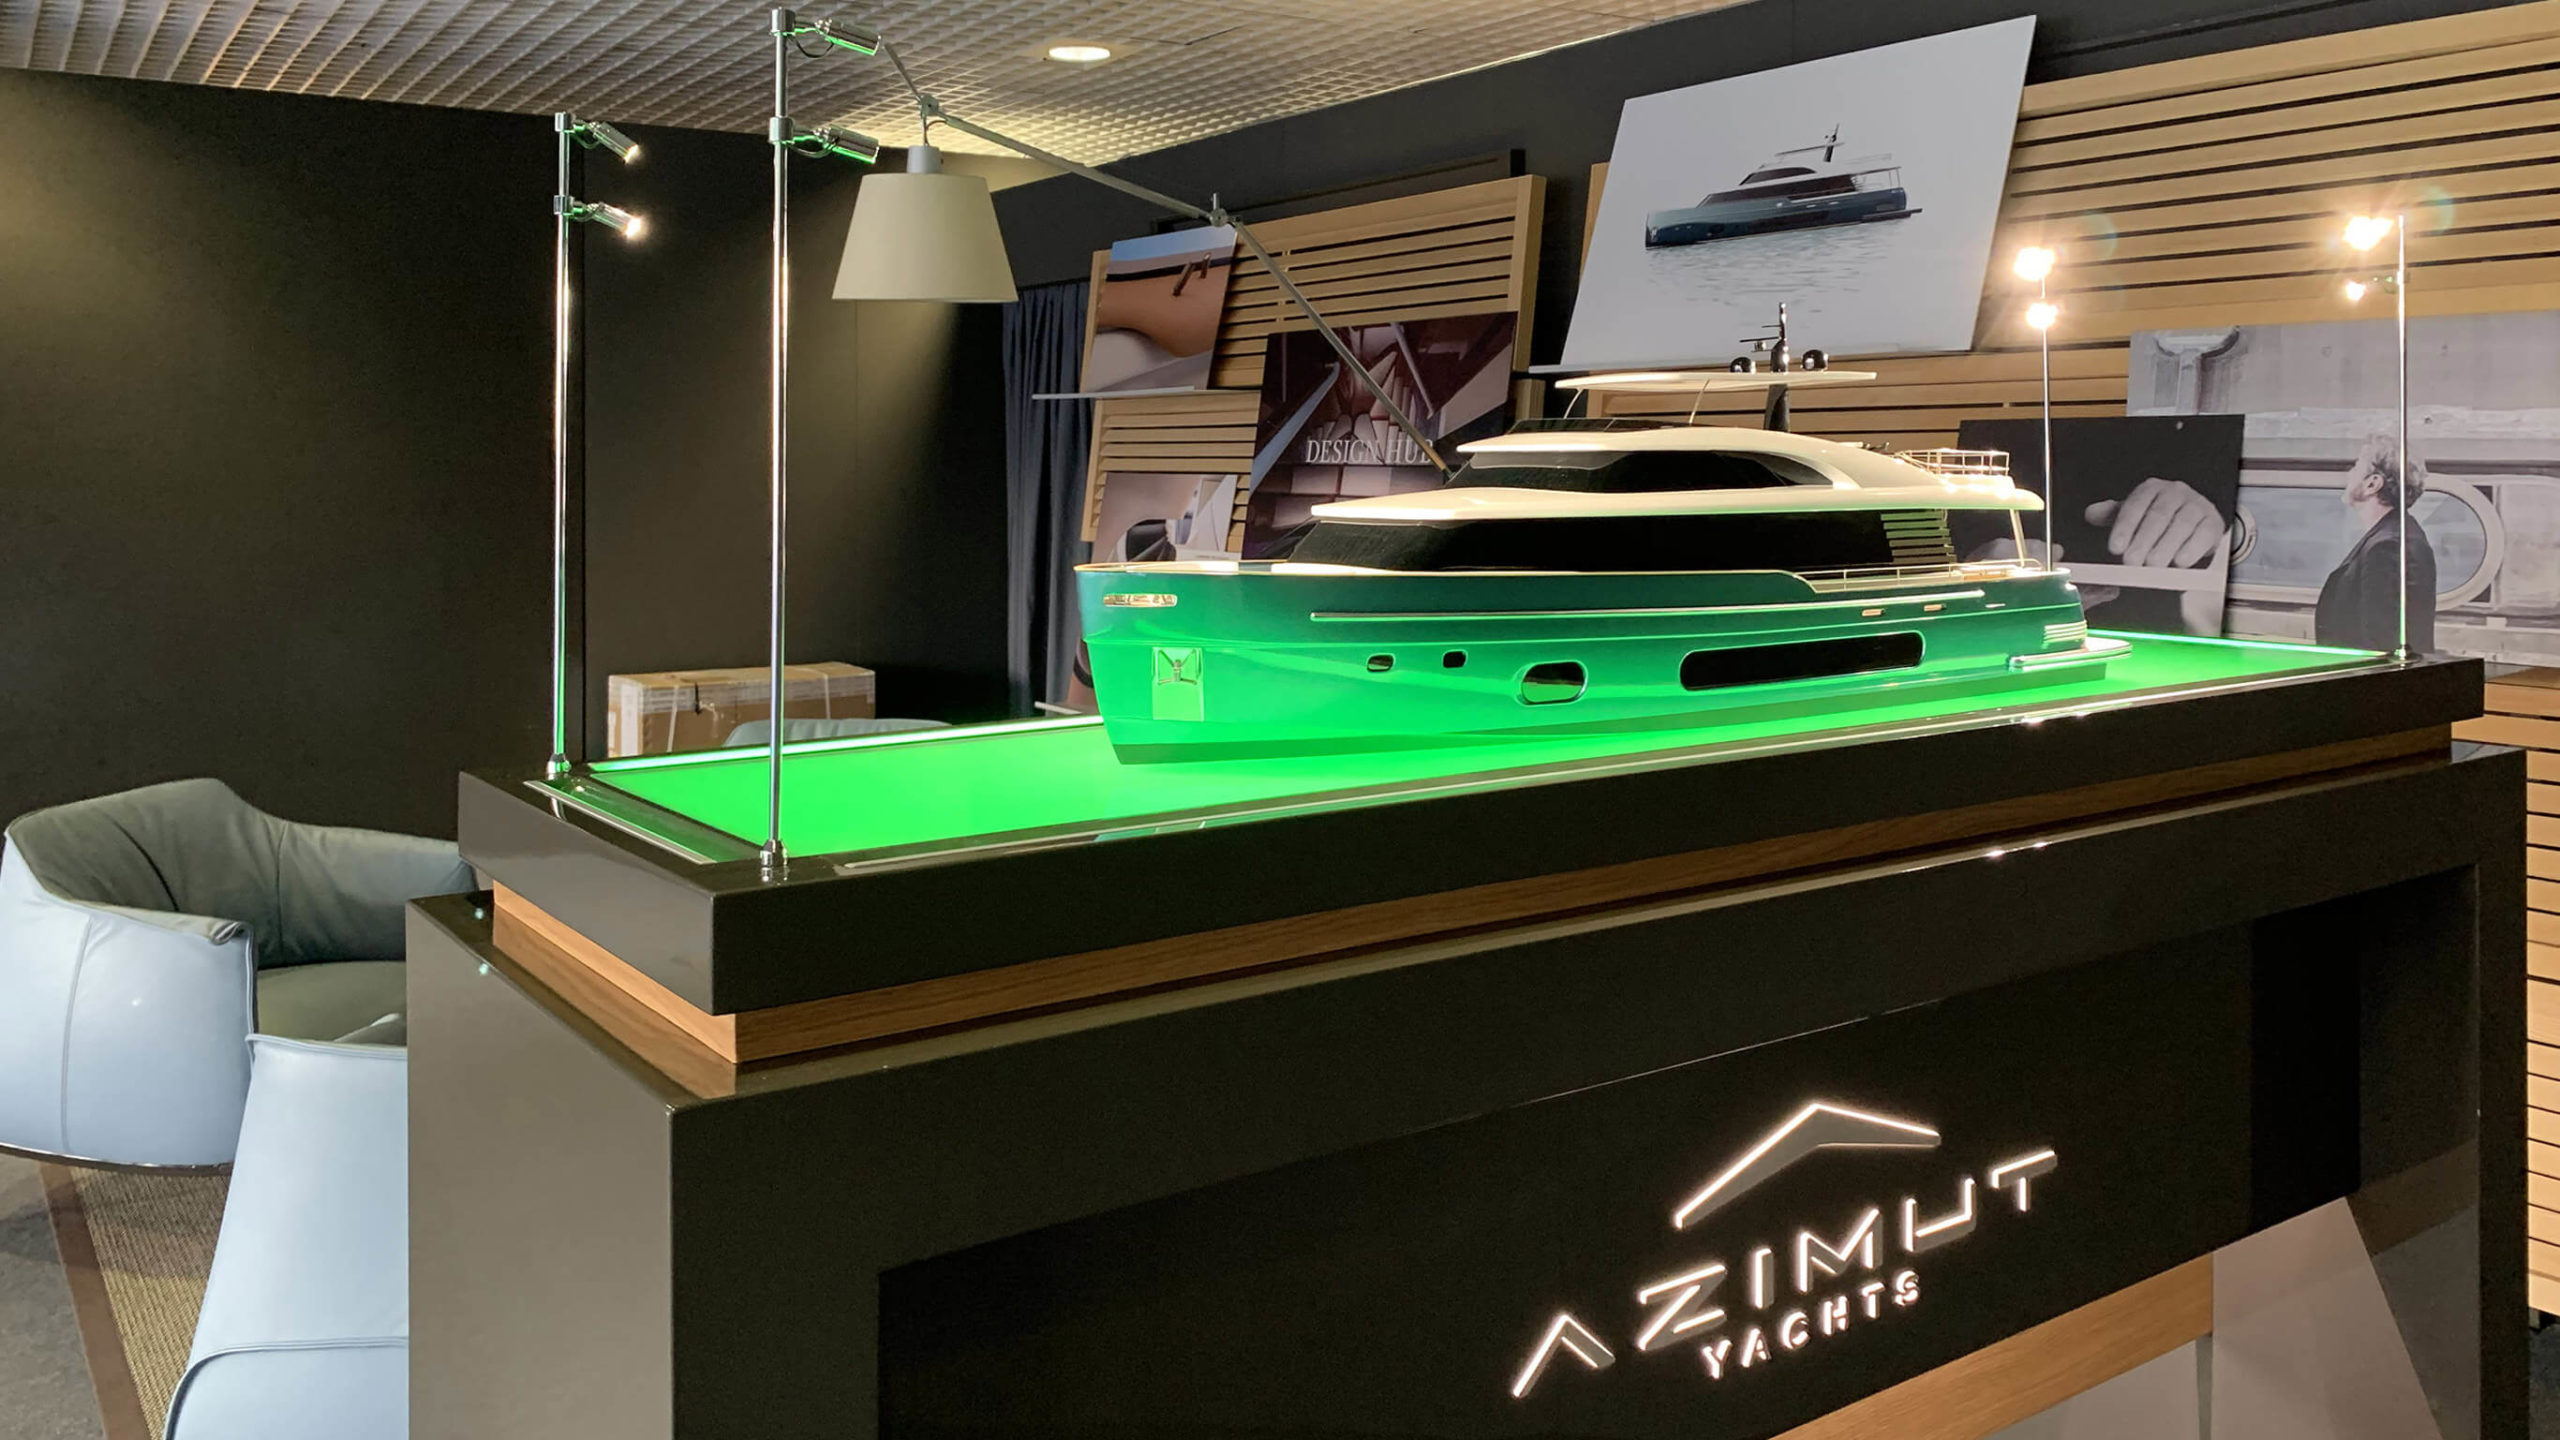 Evento Azimut Yachts al Cannes Yachting Festival 2019 con Superresolution